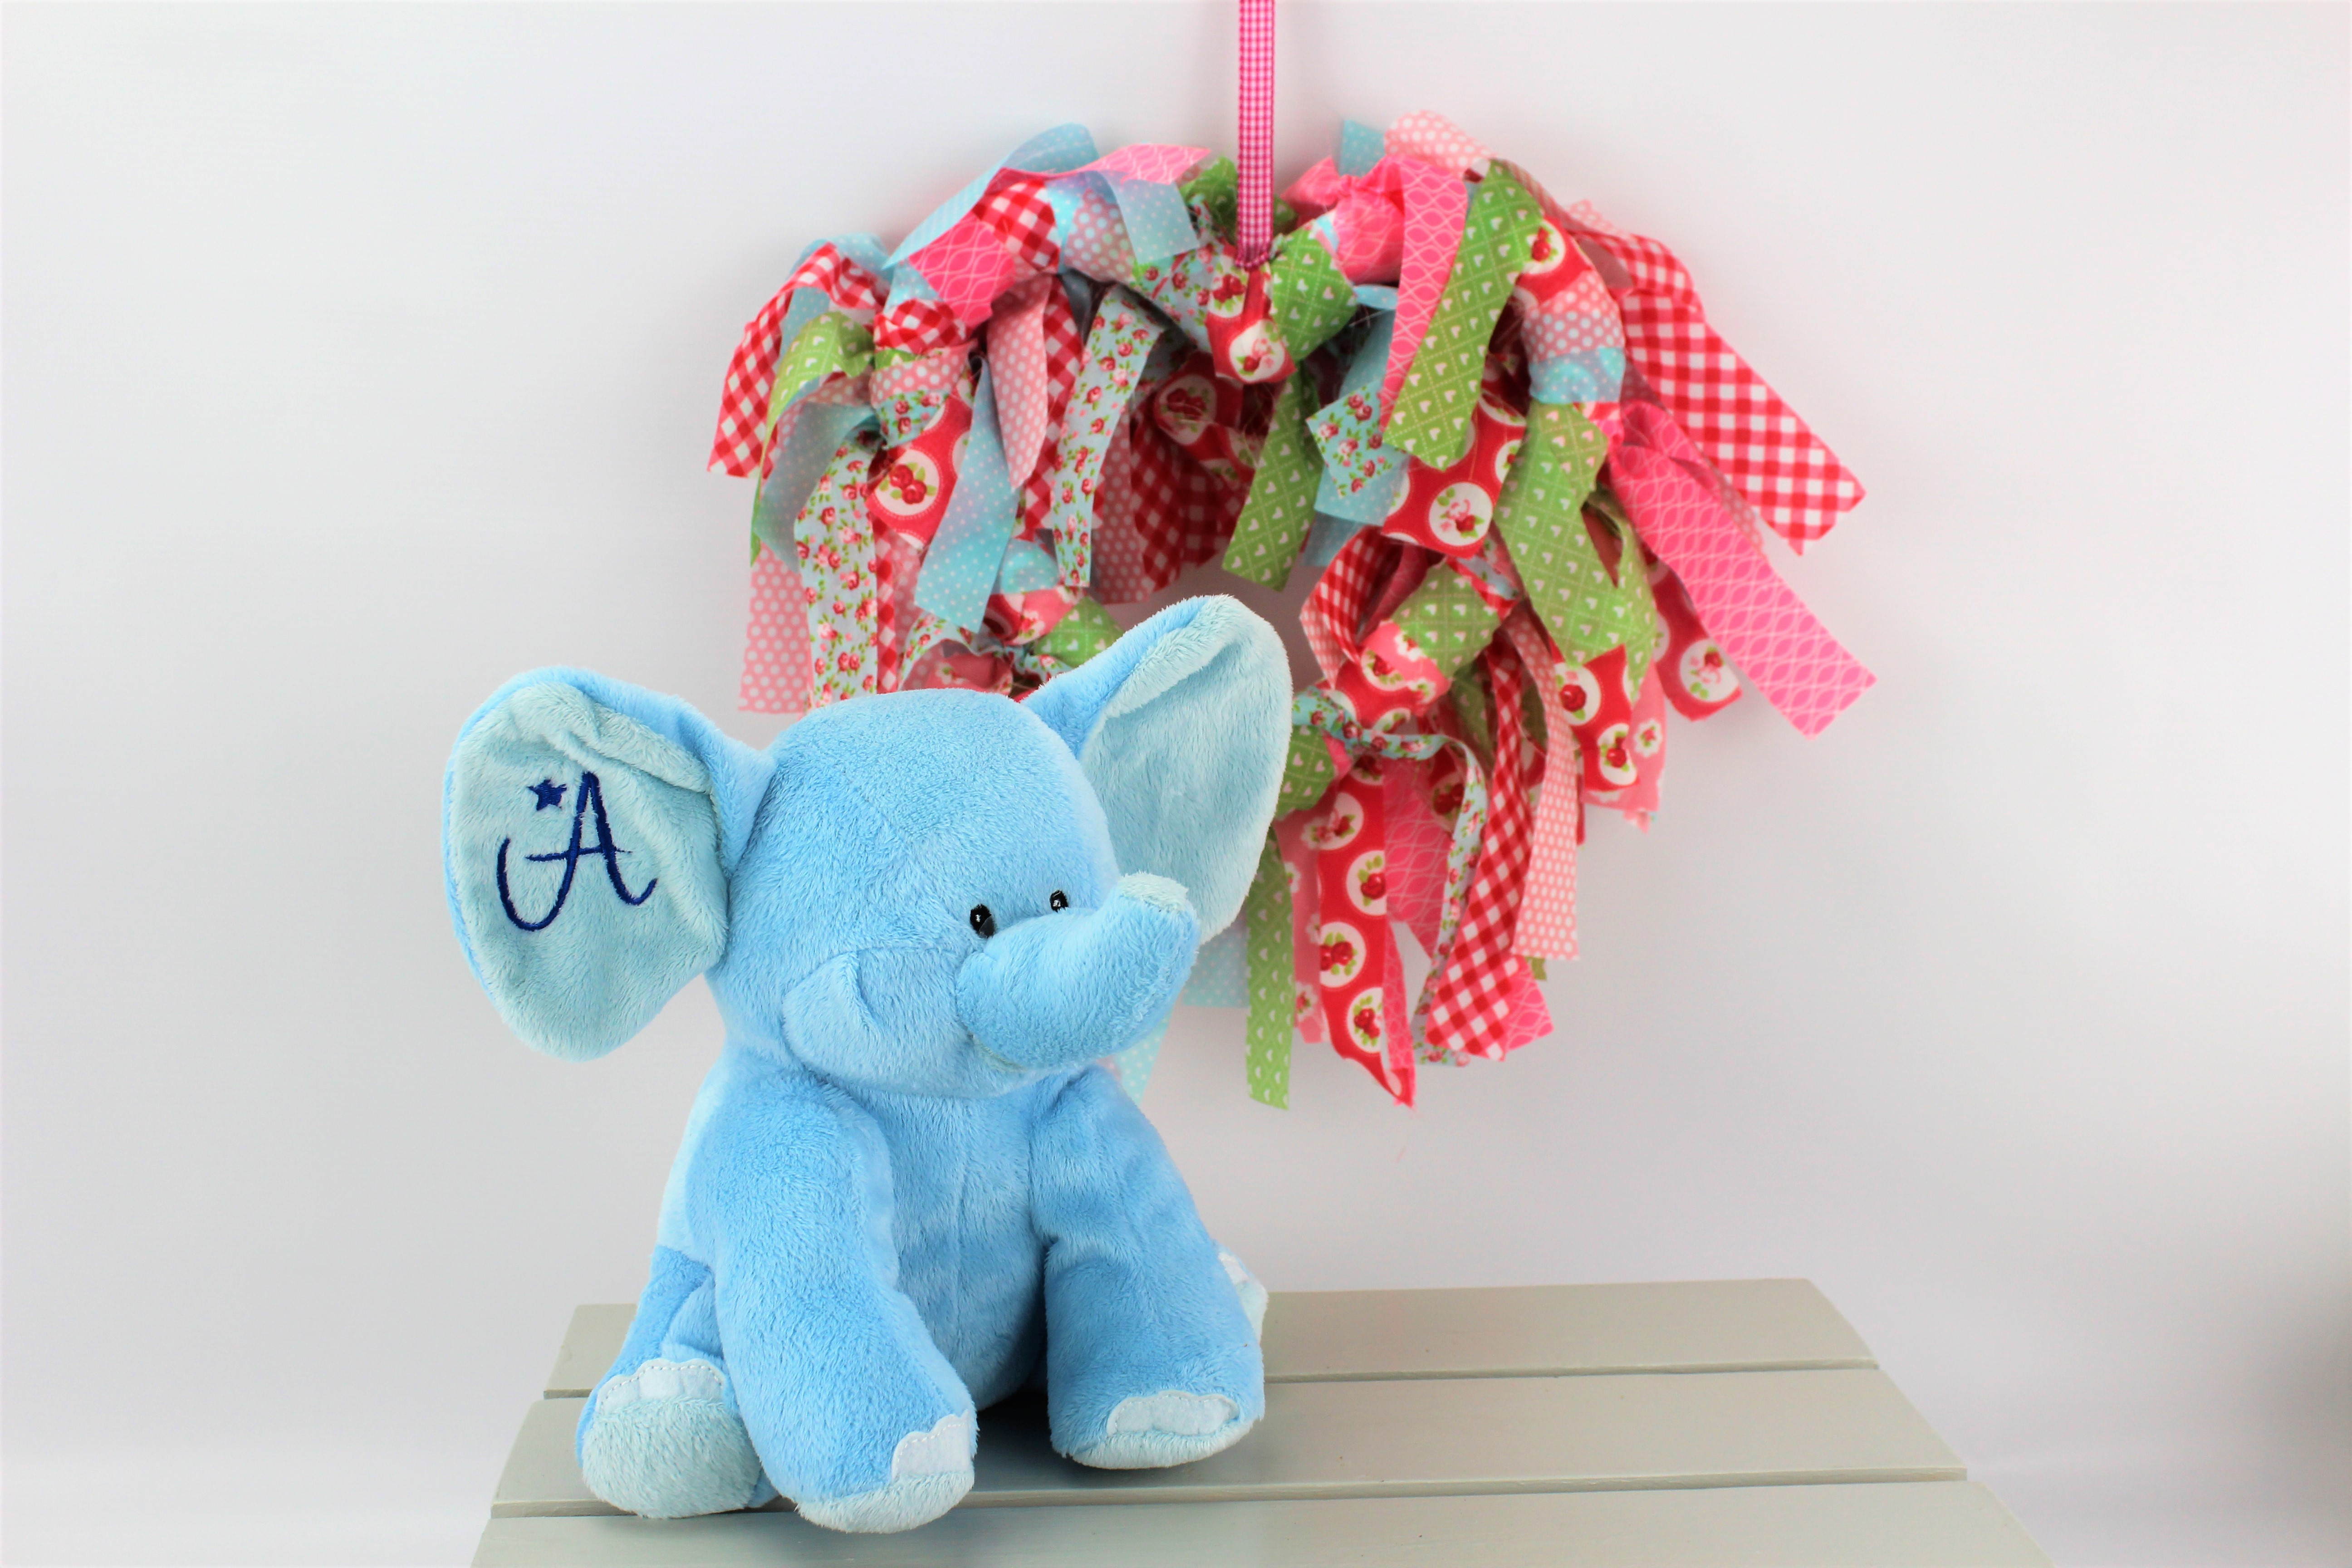 Baby Boy Gifts Toys : Elephant soft toy baby boy gift heavensent gifts